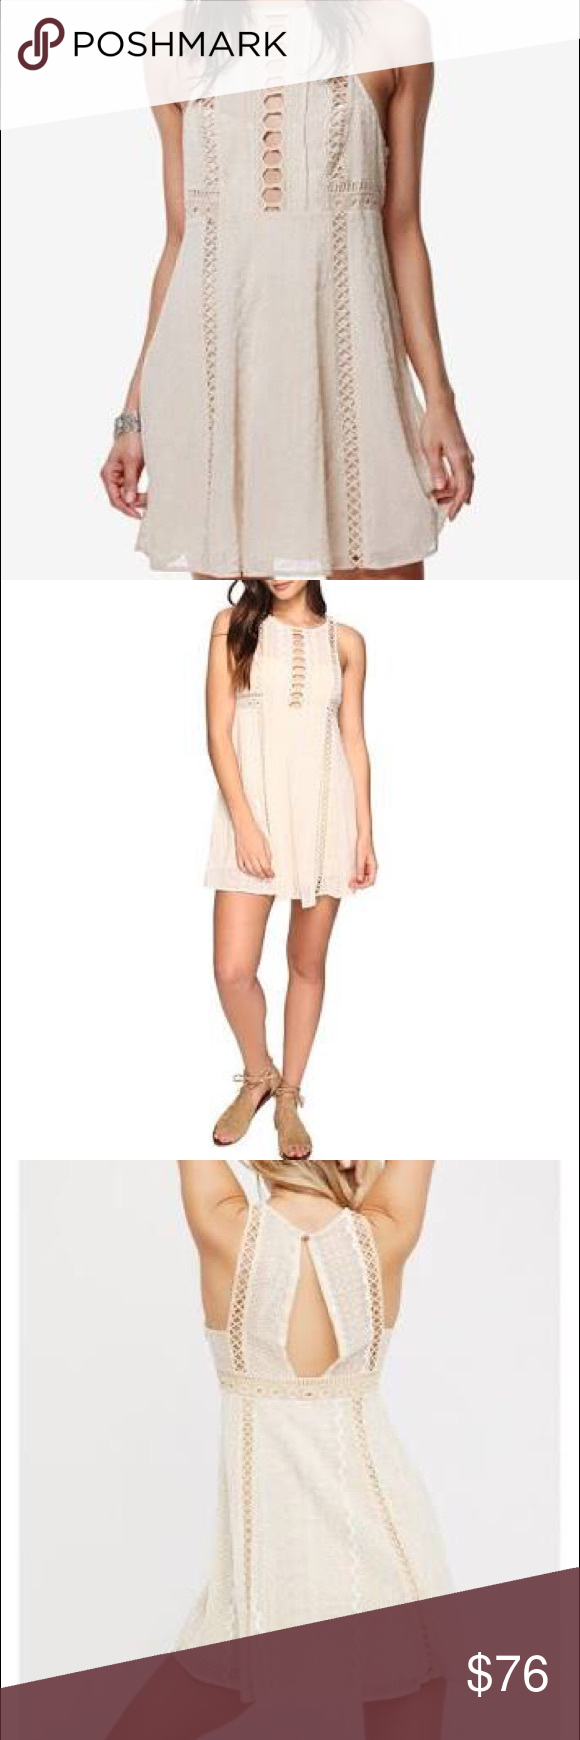 Free people summer dress Absolutely light and gorgeous dress ready for a beach or pool party! Free People Dresses Mini